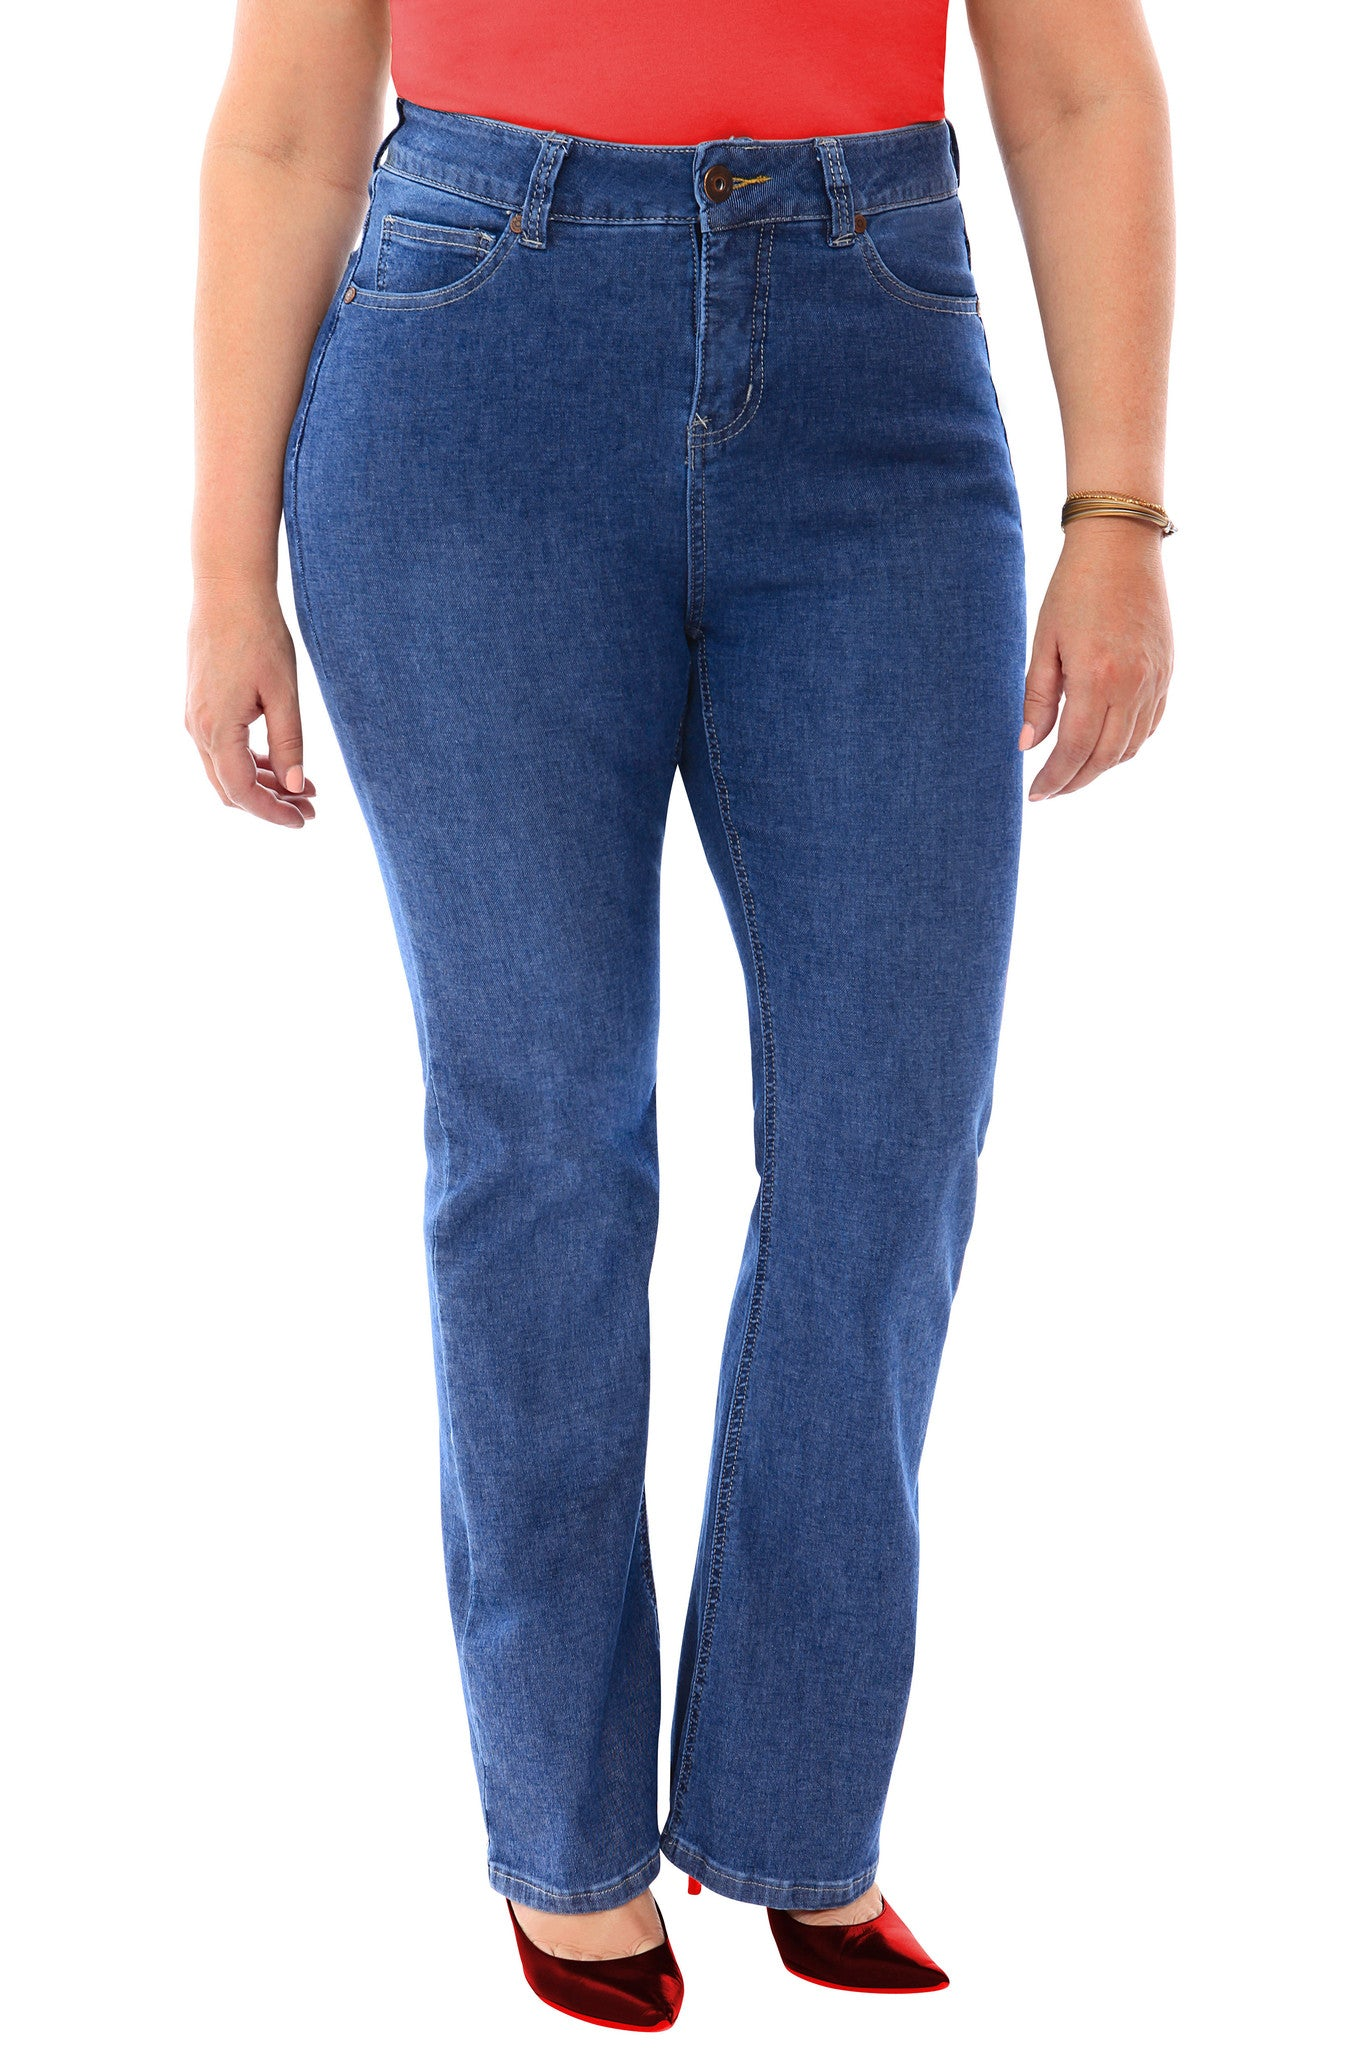 360 Stretch High Rise Straight Denim Jeans in Medium Stone